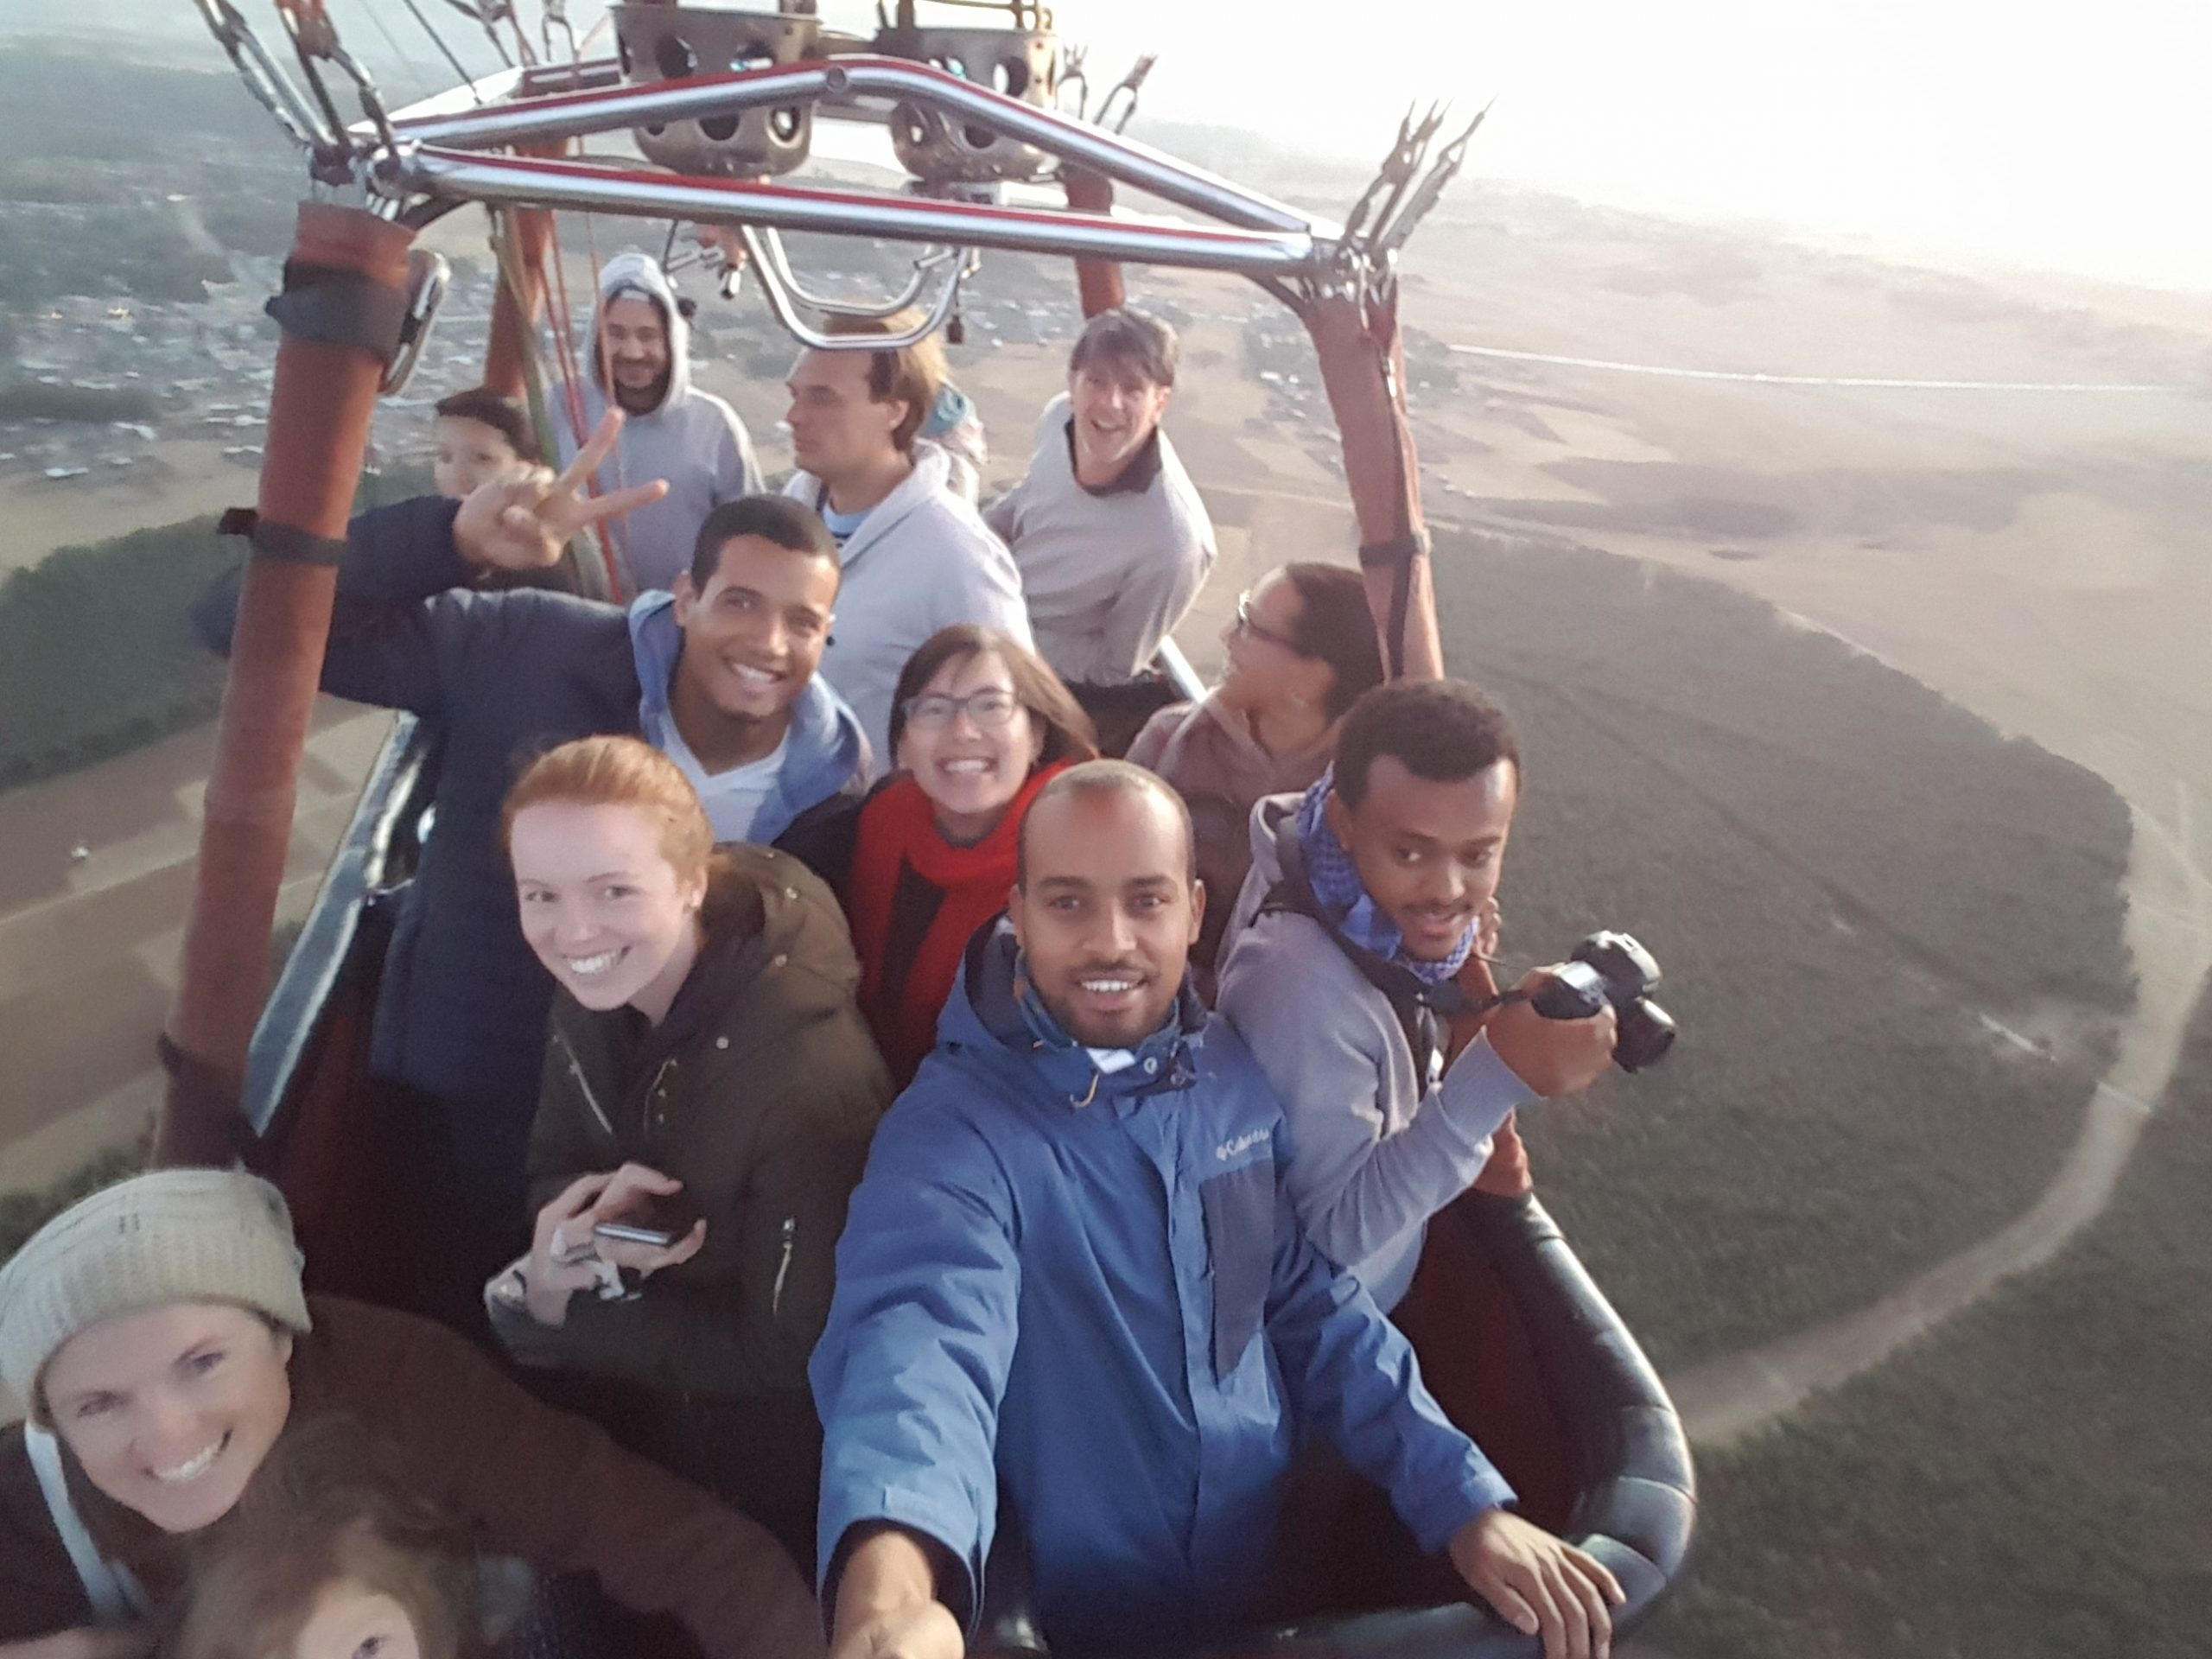 Sunrise balloon flight Addis Ababa Friday 30 April 2021